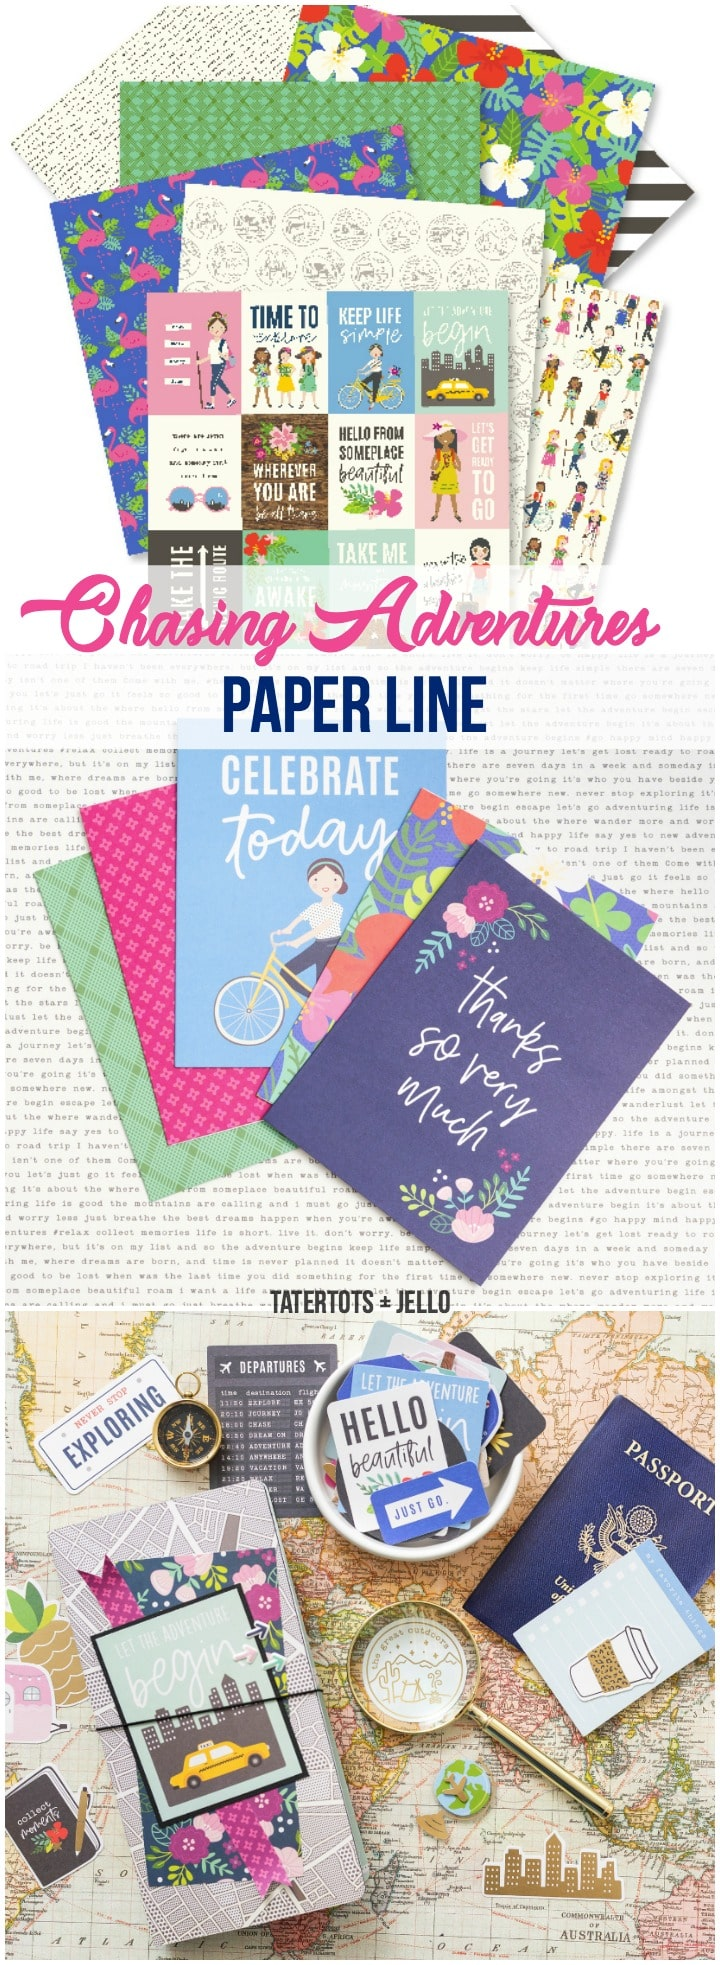 Jen Hadfield Pebbles Chasing Adventures paper line! So many ways to document adventures with your family and friends - whether it's overseas or in your own backyard! Document those moments!!